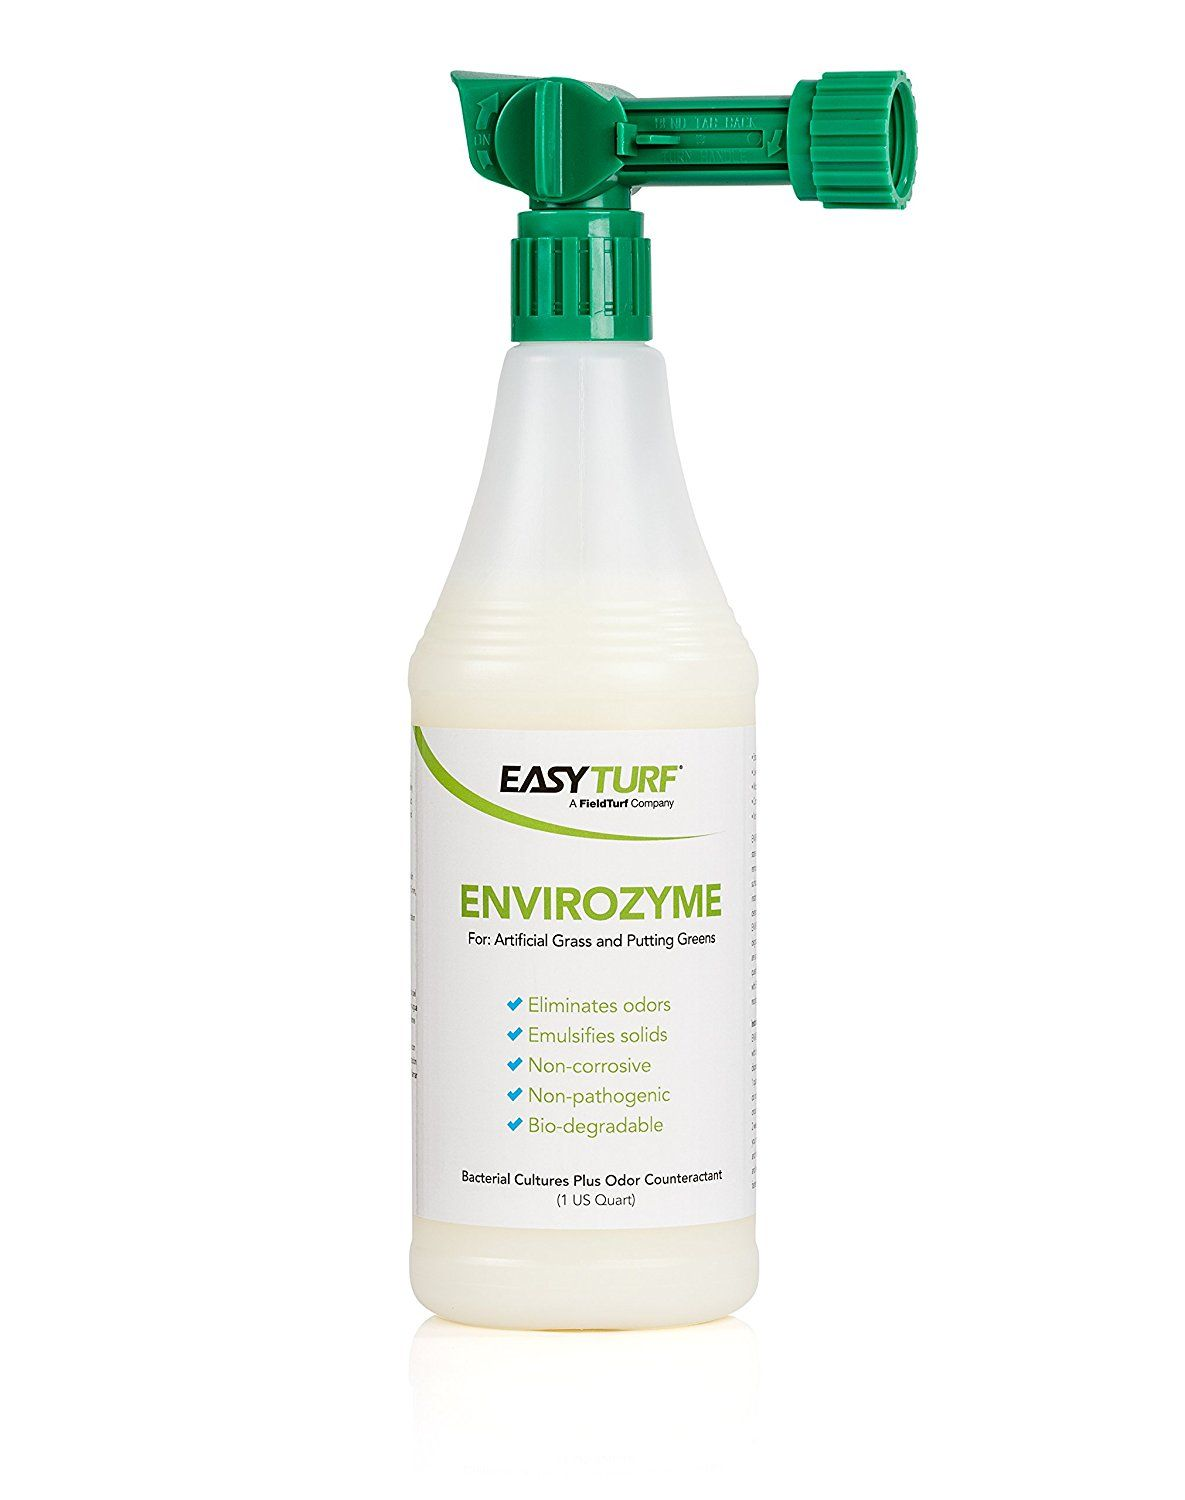 Easyturf Envirozyme Urine Odor Neutralizer See This Awesome Image Cat Litter Cat Litter Easy Turf Urine Odor